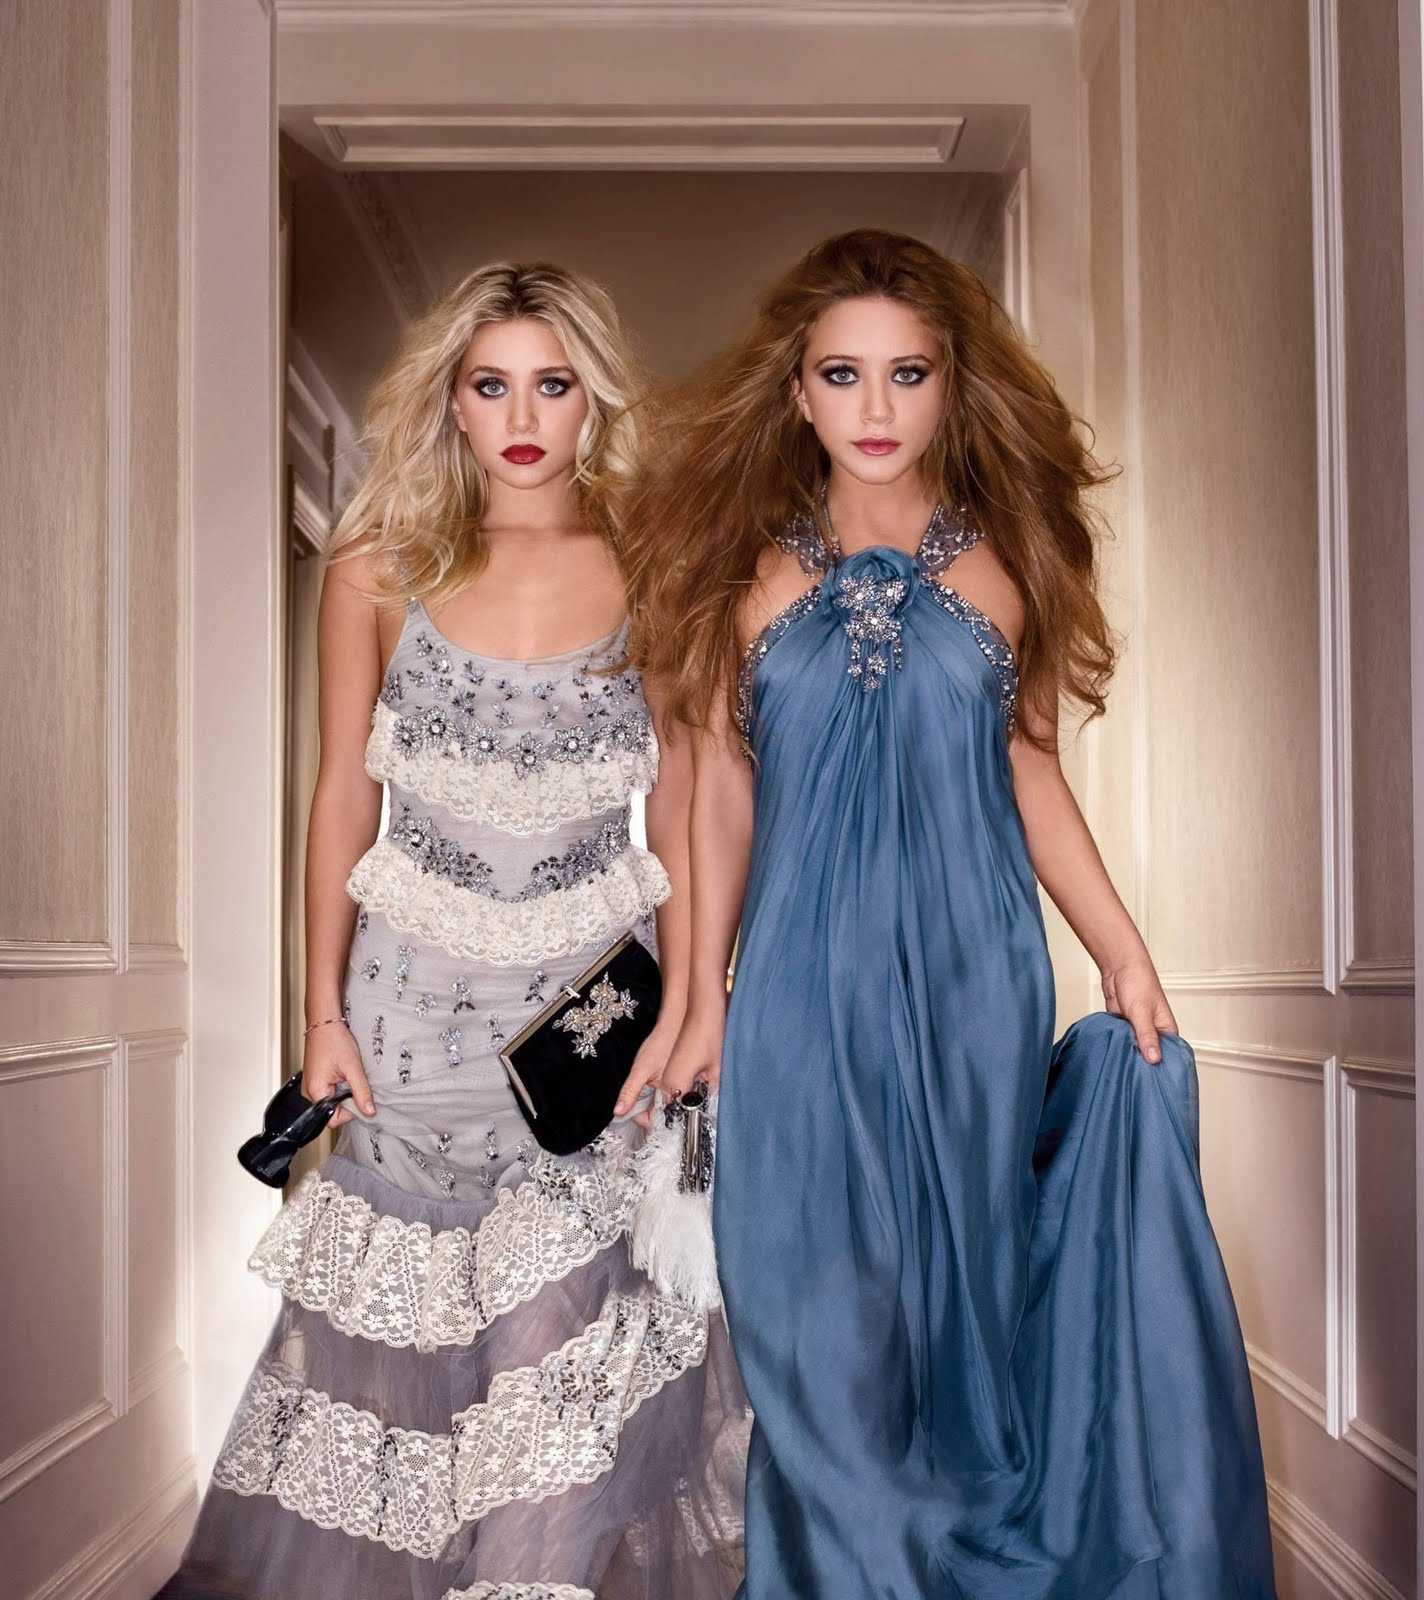 http://3.bp.blogspot.com/_eJA0MlOdpyo/S_rFx1rjdSI/AAAAAAAAAC8/pxBRaqVqLo8/s1600/mary-kate-ashley-olsen-badgley-mischka-ad-hq-02.jpg